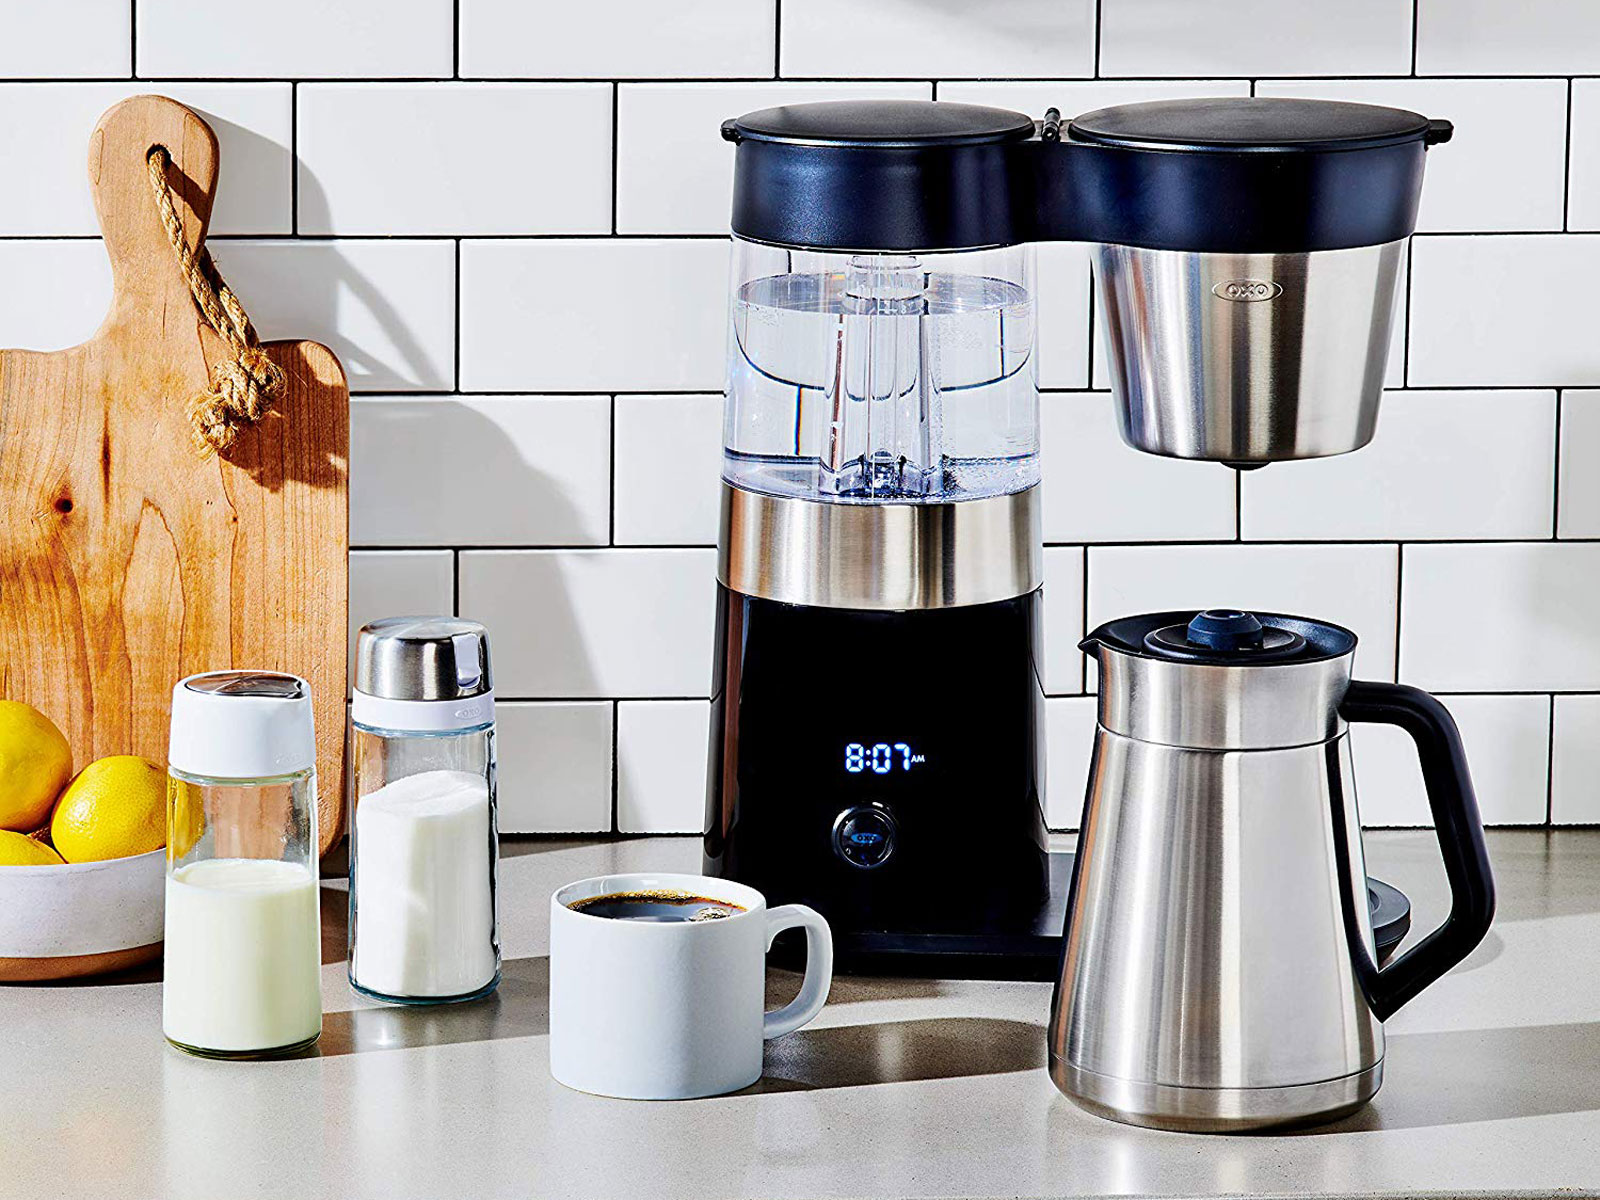 Amazon Prime Day Is Almost Over: Shop These Kitchen Deals Before They're Gone